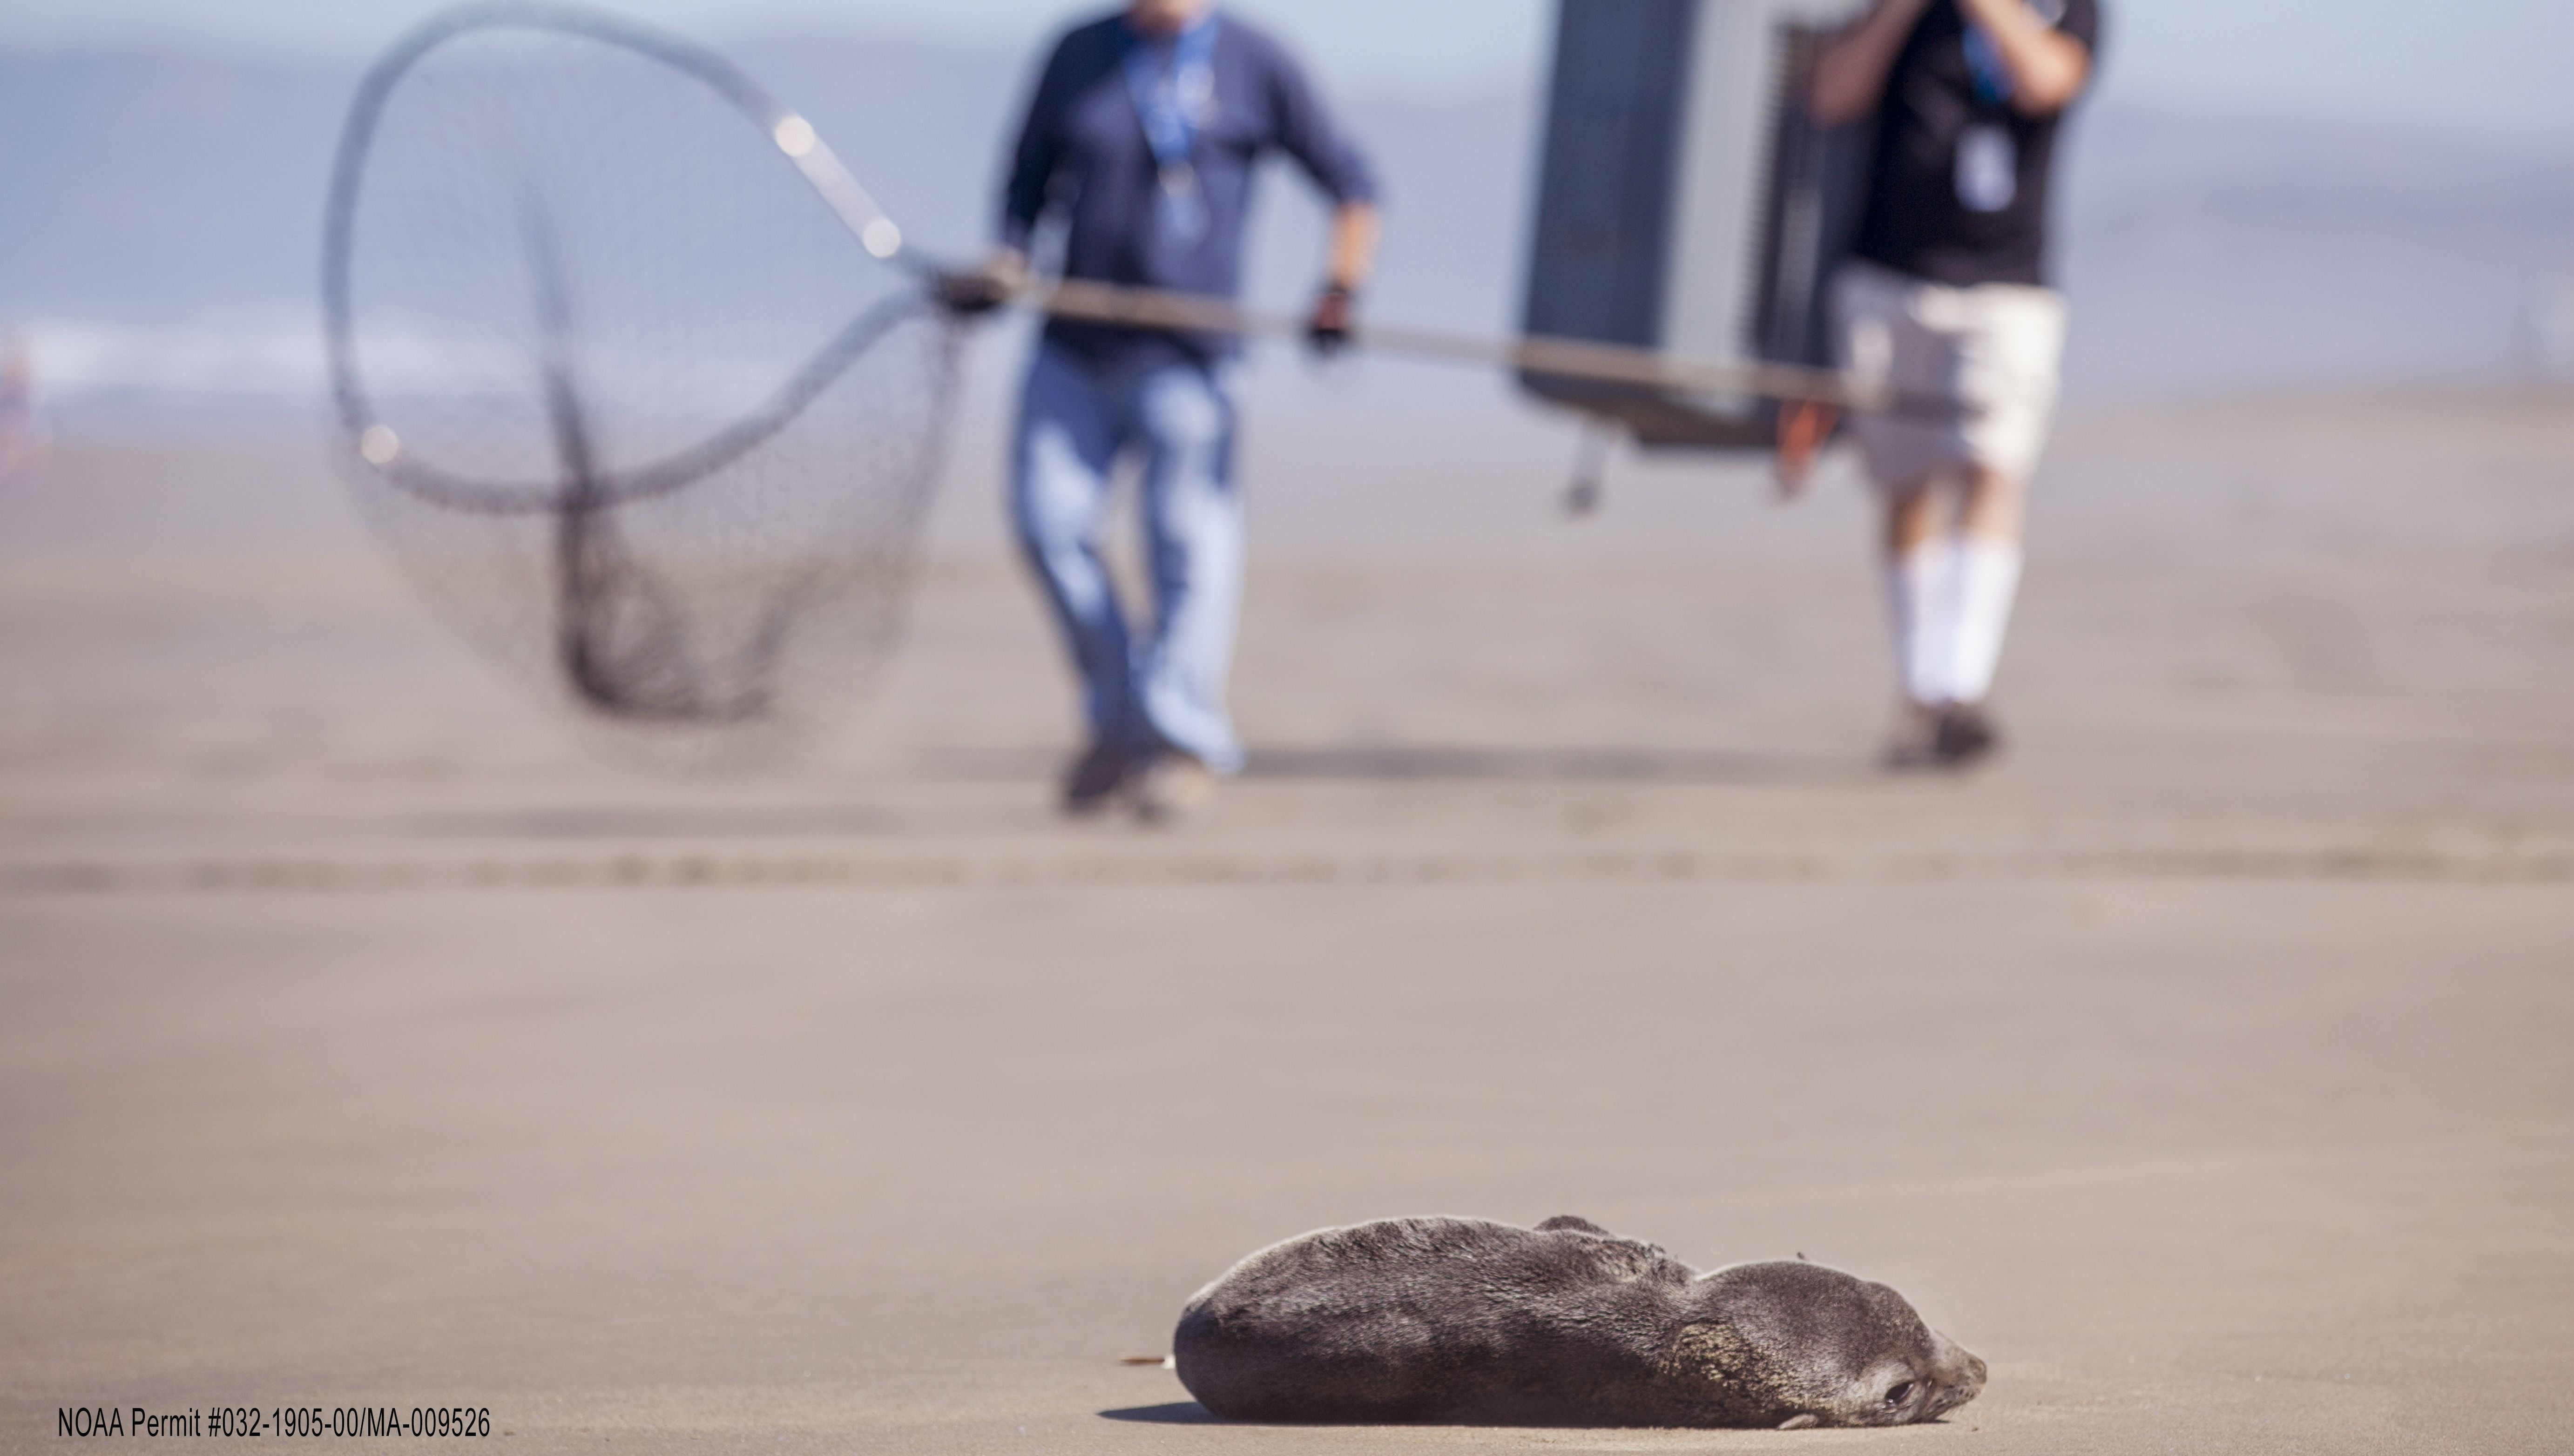 Volunteers from the Marine Mammal Center approach a stranded fur seal on Ocean Beach for rescue in San Francisco, California.